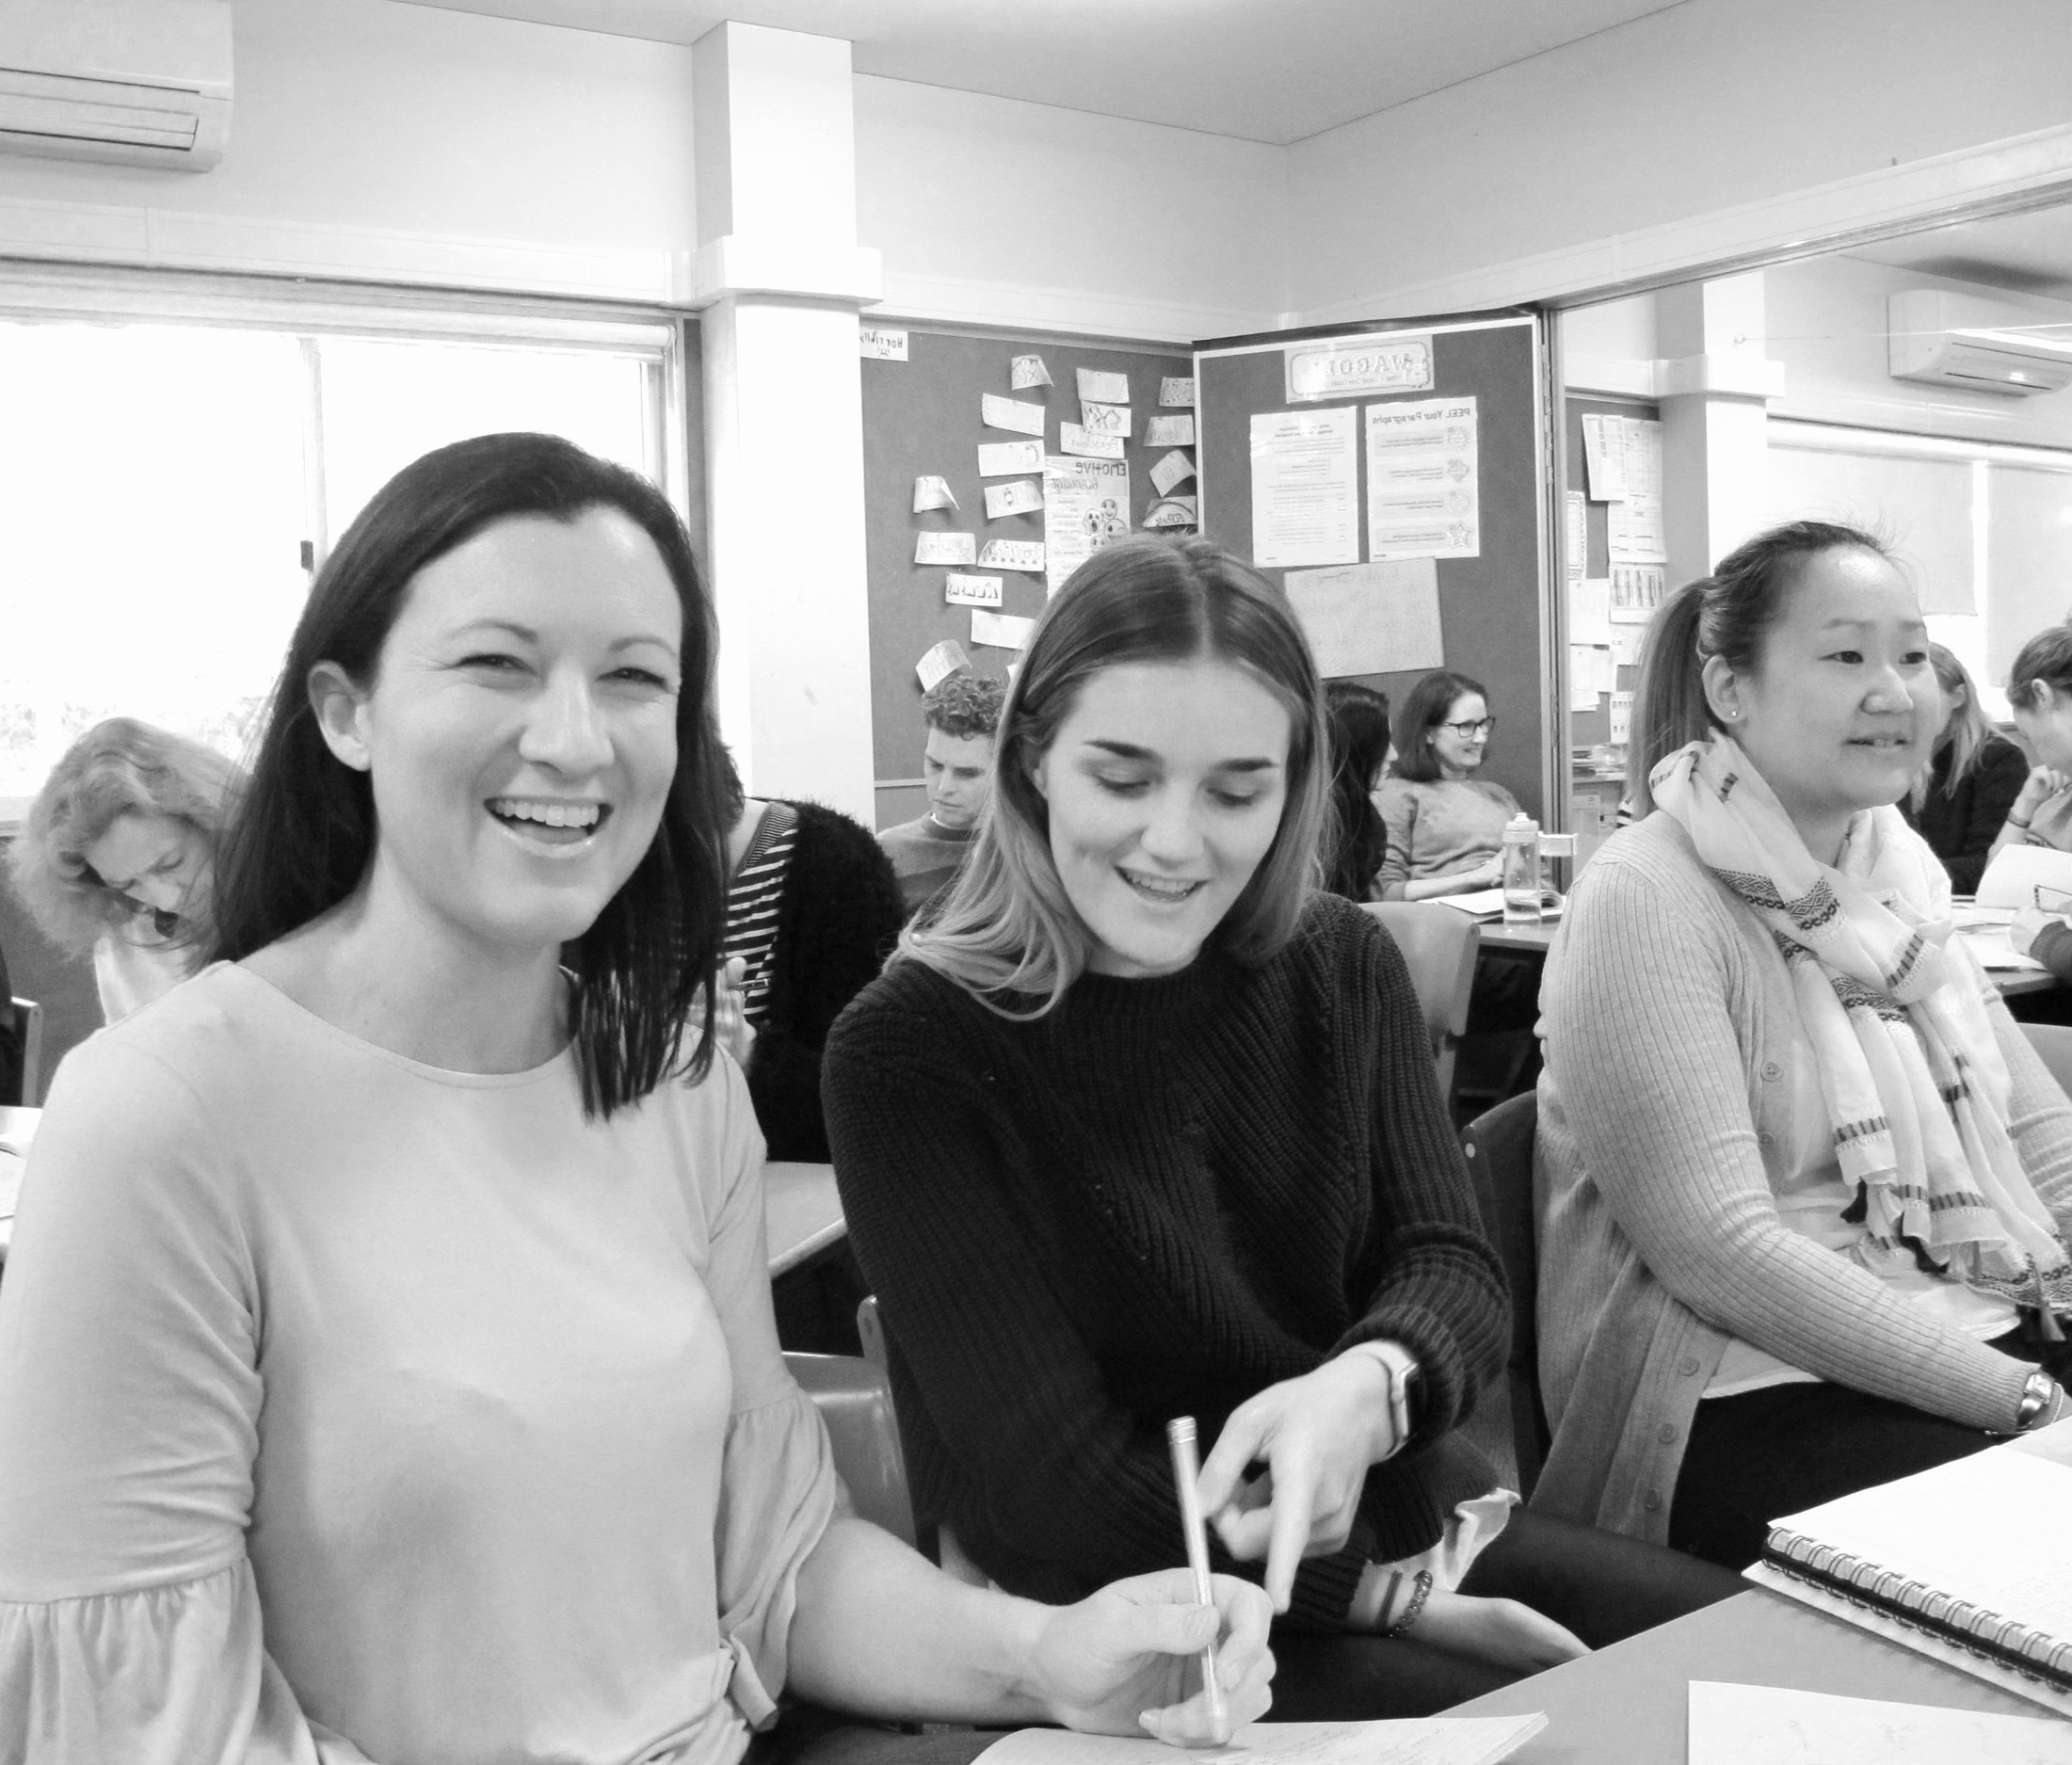 CREATIVE WRITING PROFESSIONAL DEVELOPMENT WORKSHOPS AT YOUR SCHOOL - Book The Writing Workshop's NESA-accredited Teacher PD workshops for your school. Engage your students, engage your own creativity, make life better. More information.